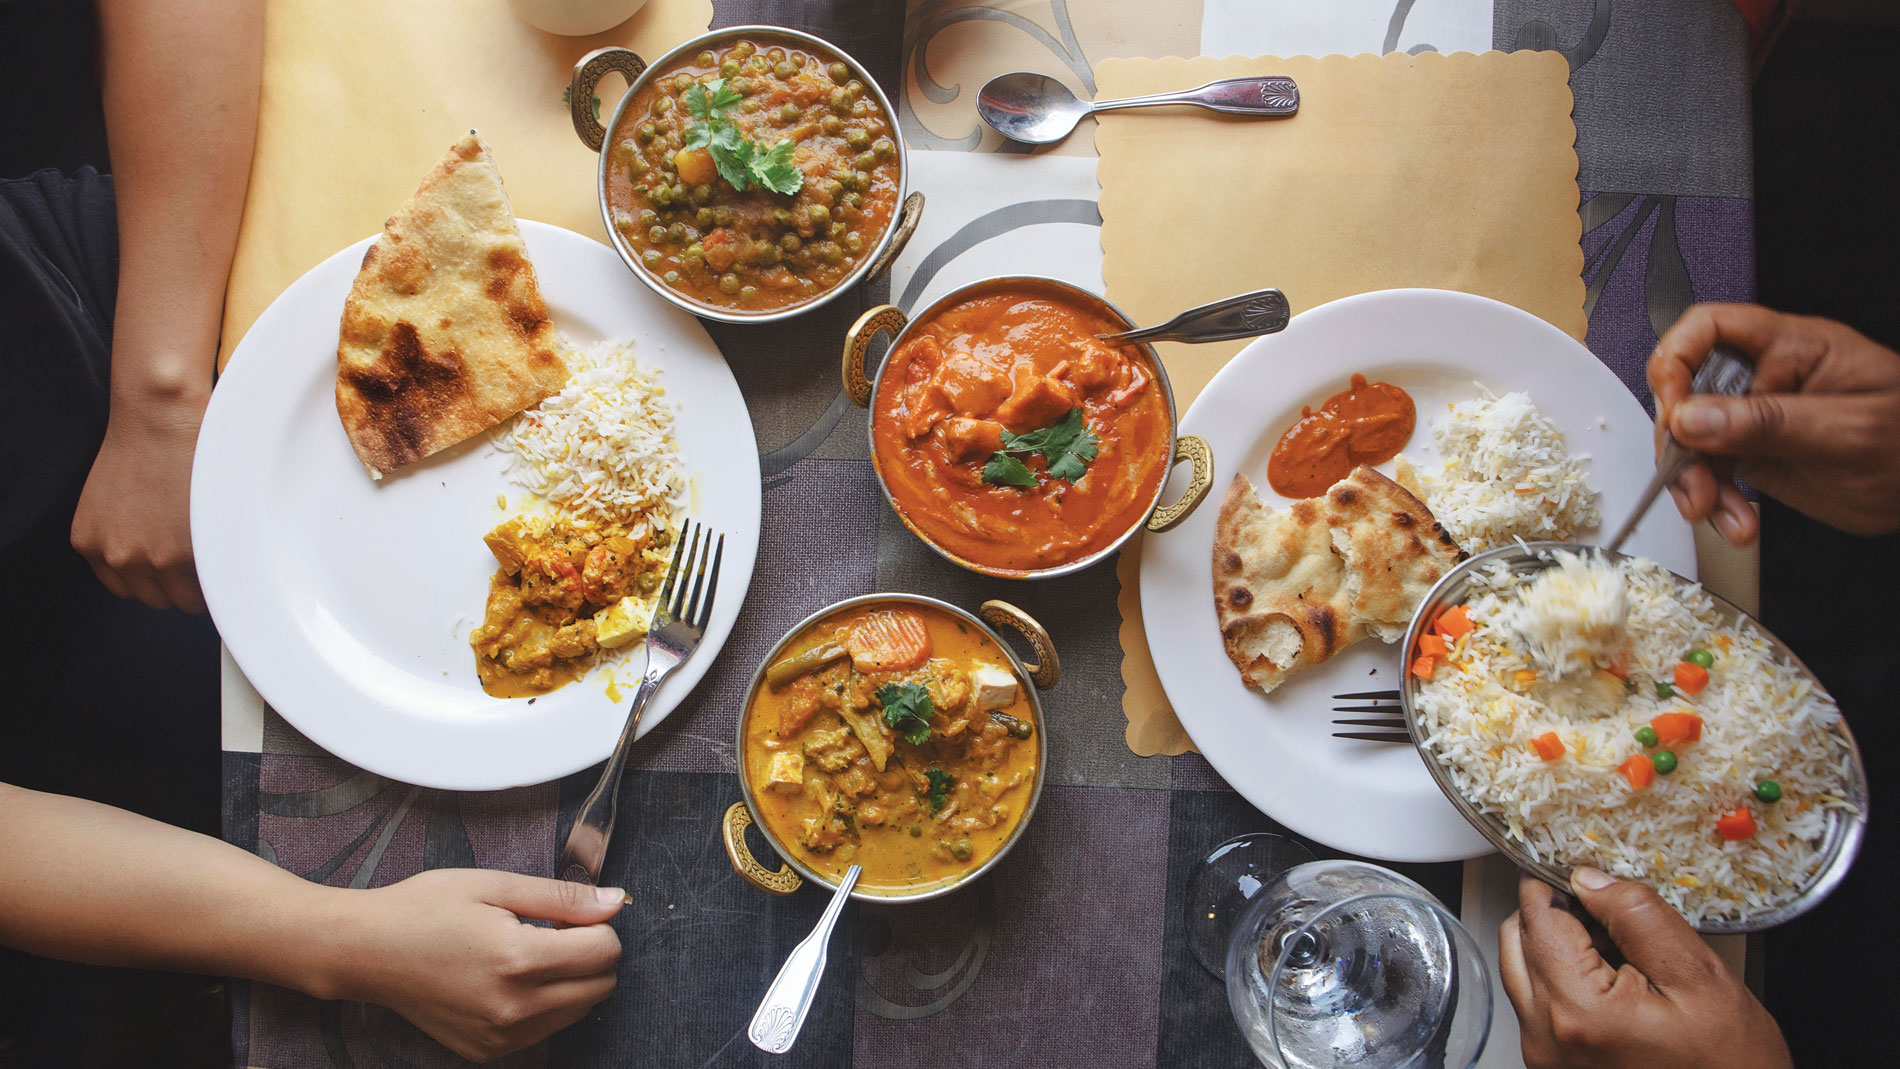 two people sharing an indian meal